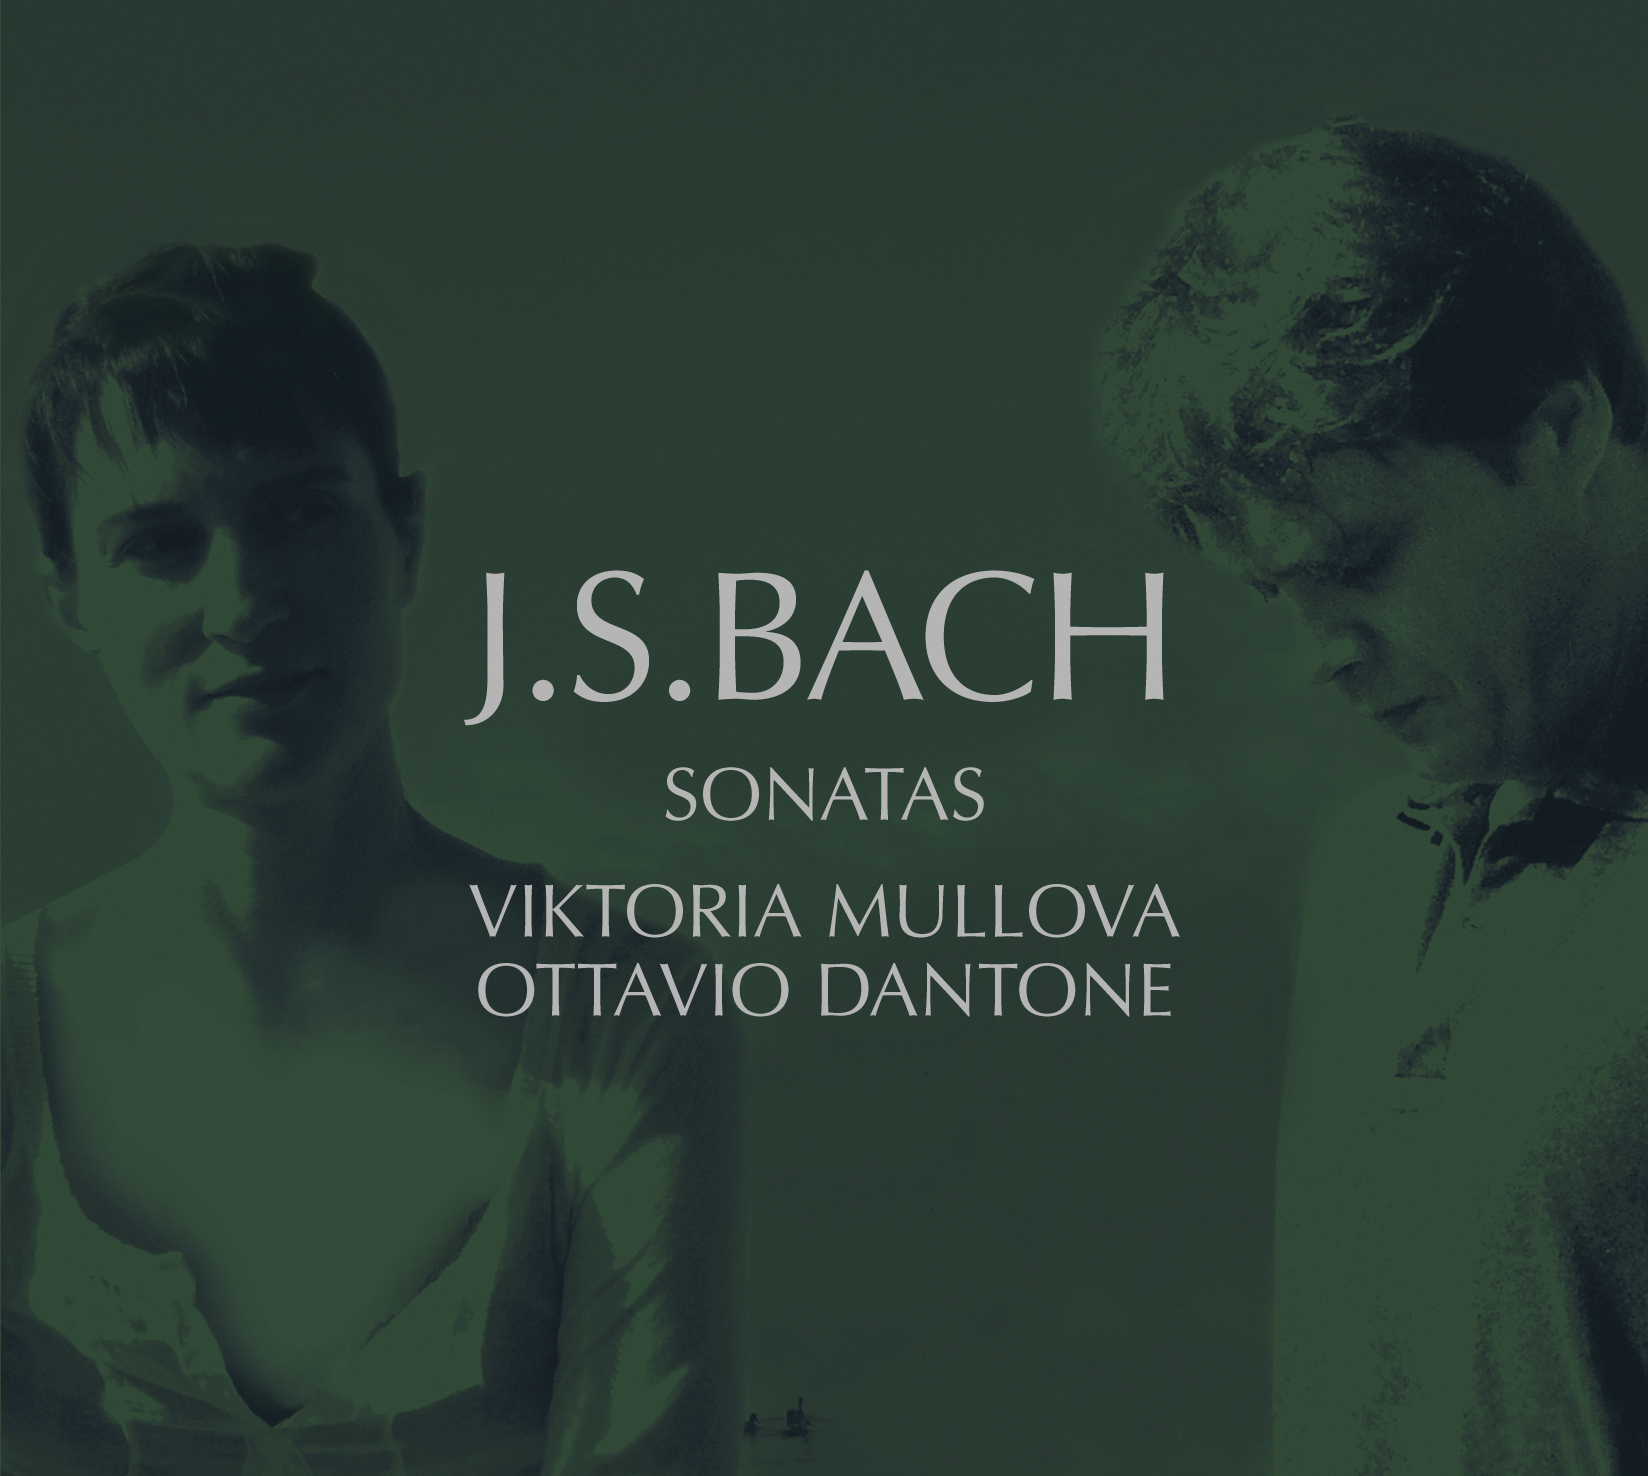 J.S. Bach: Sonatas for Violin and Harpsichord, BWV 1014-19